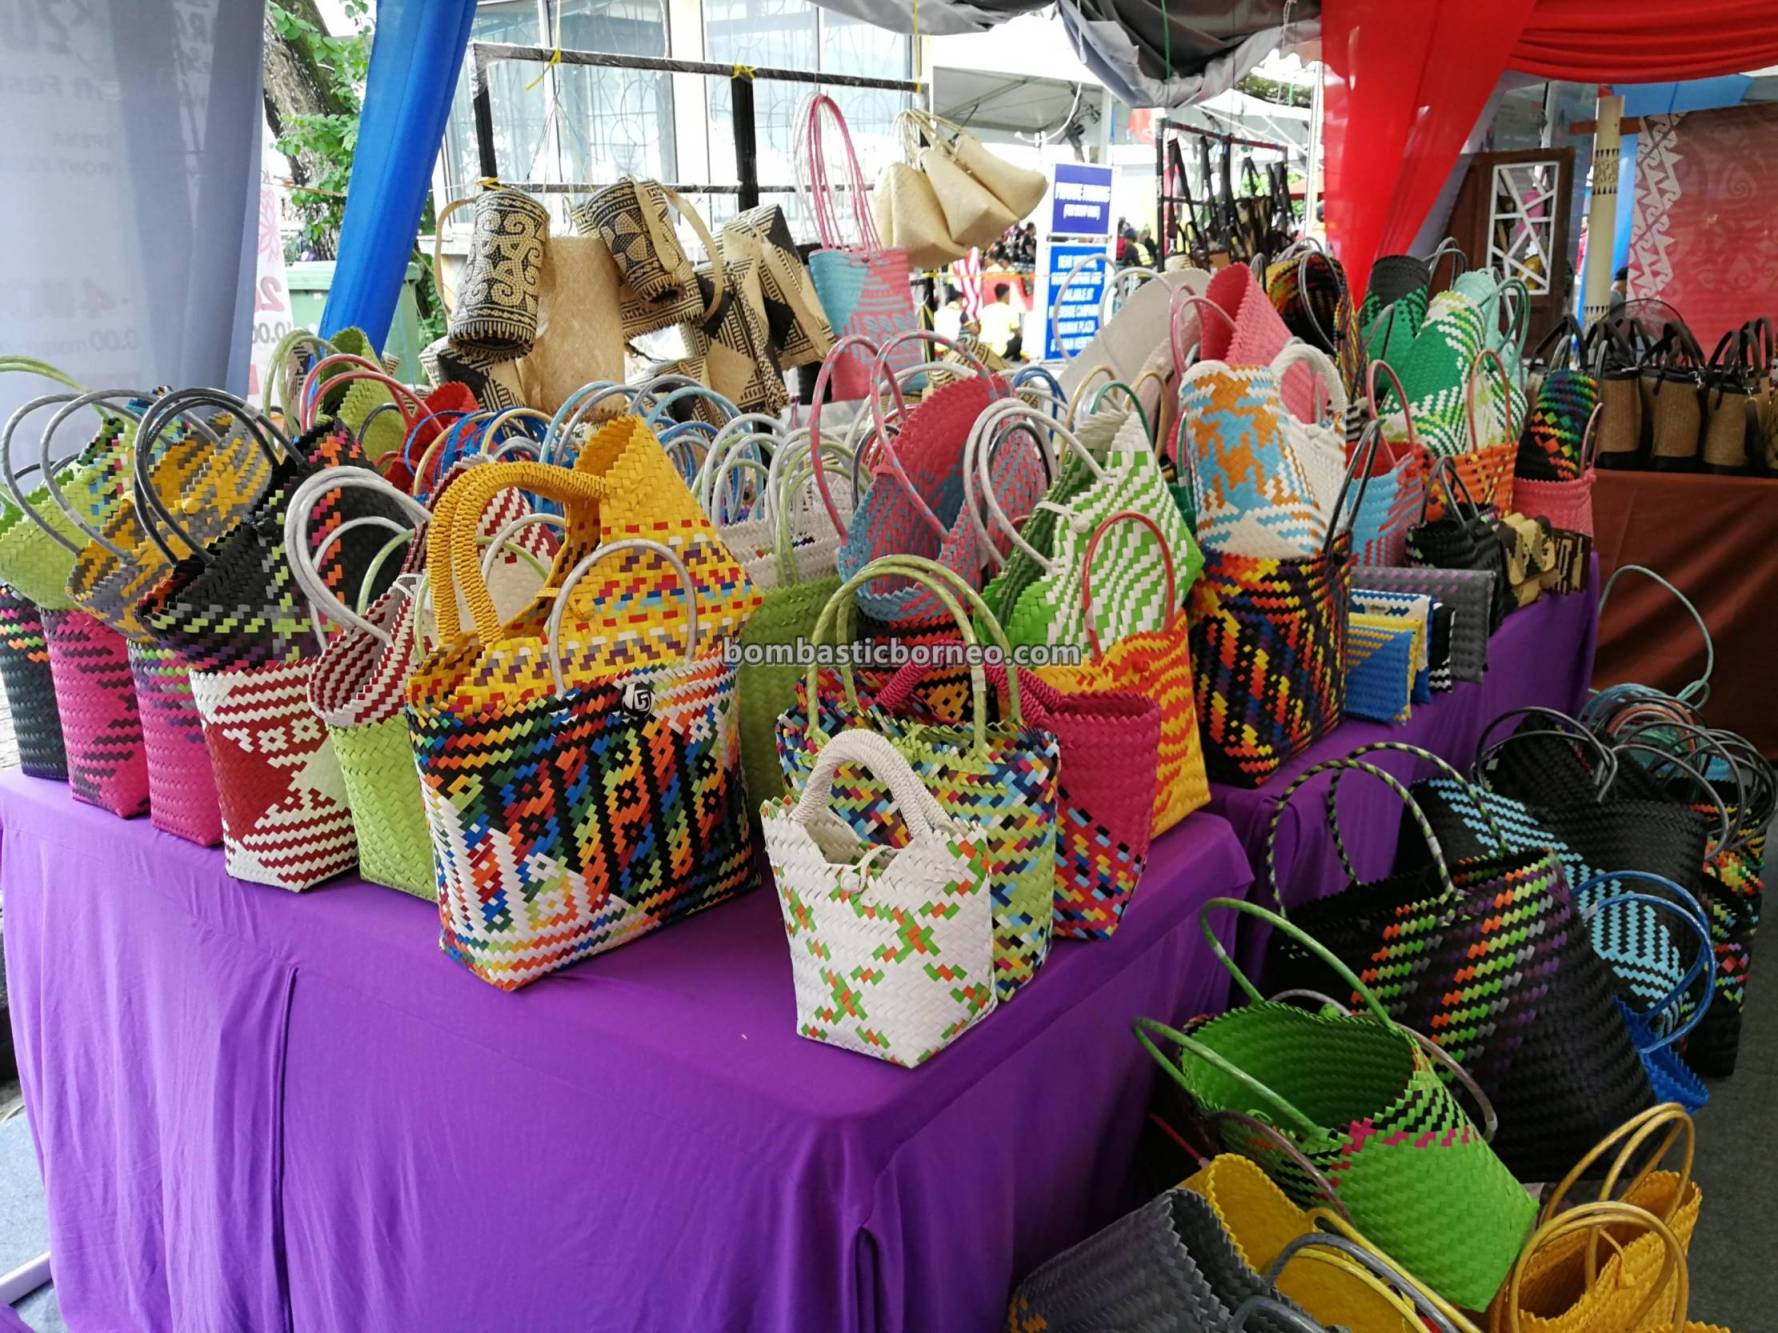 craft exhibitions, event, native, dayak, Kraftangan, Borneo, Kuching Waterfront, Tourism, tourist attraction, travel guide, 砂拉越马来西亚, 婆罗洲原住民, 手工艺品展览,